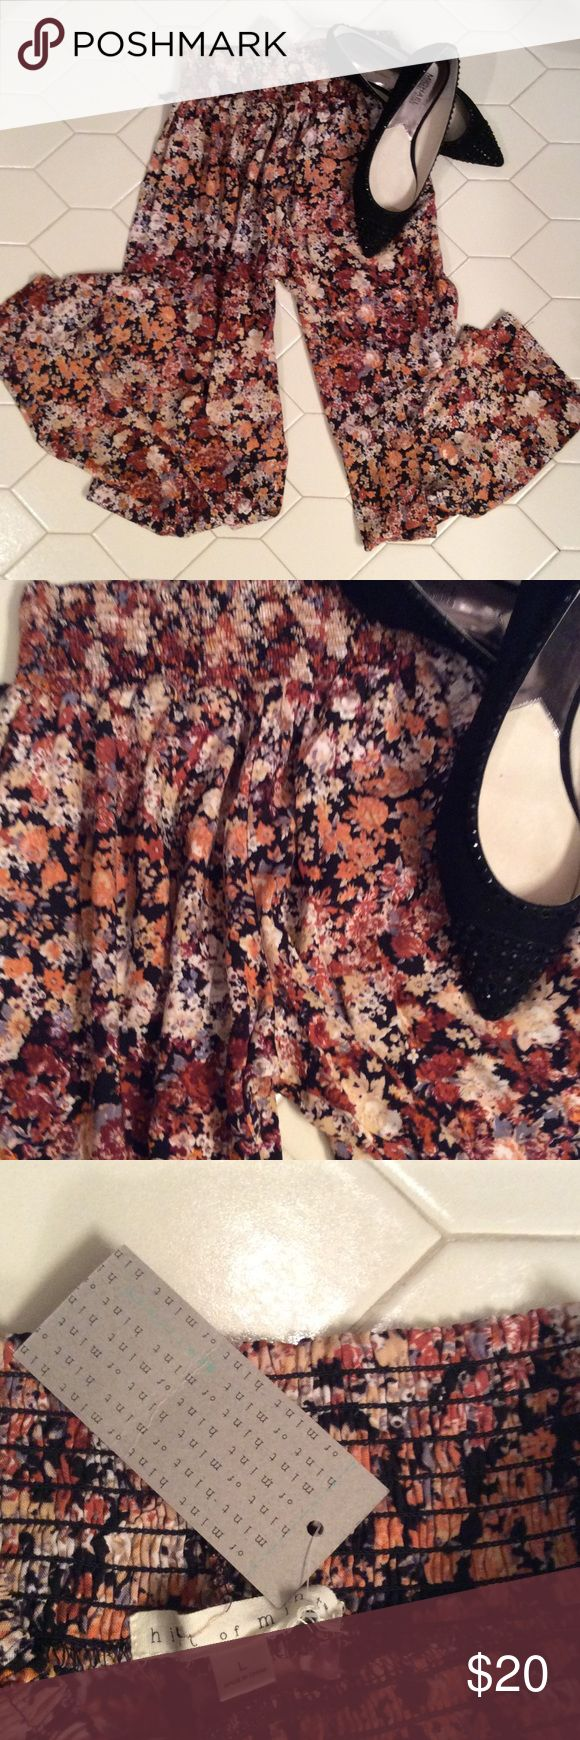 Floral Flowing high waisted pants Floral (cream, tan, black, rust) flowing pants with a high waist several gatherers at the top by Hint of Mint. Great with flats or a neutral espadrille. Size large fits more like a medium. $20   🔶 Please ask all your questions before you purchase. I'm happy😊 to help  🔶 Sorry, no trades or hold. 🔶 Please, no lowball offers. 🔶 Please use the Offer Button 🔶 Bundle for your best prices 🔶 Ships next day, if possible 🎀 Thank you for visiting my closet 🎀…